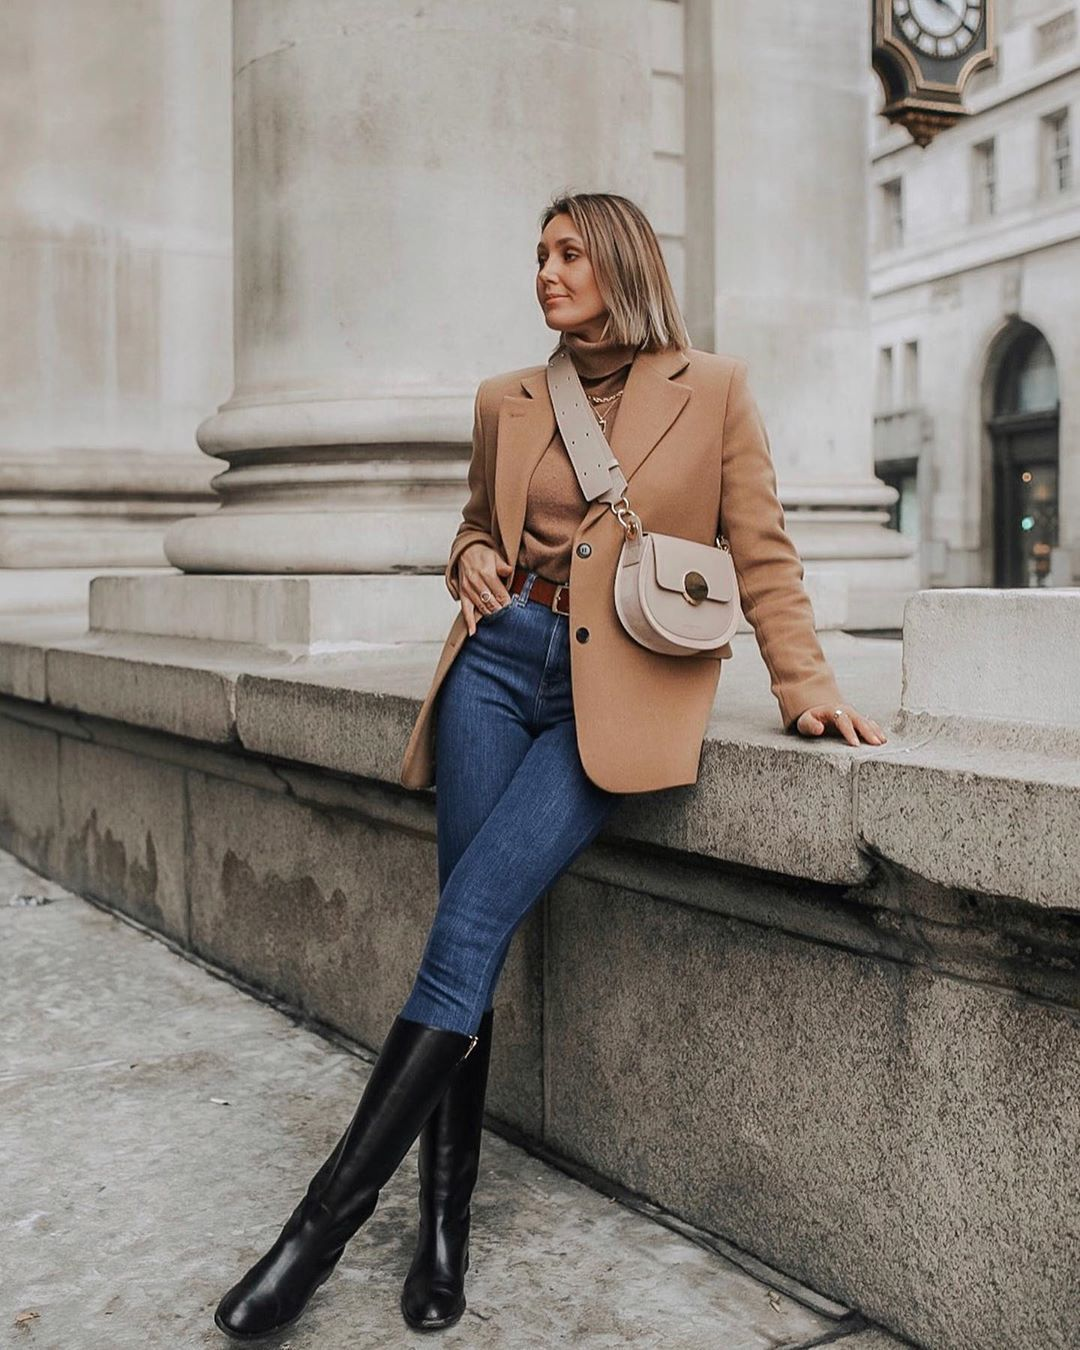 jacket blazer black boots knee high boots high waisted jeans skinny jeans turtleneck sweater crossbody bag